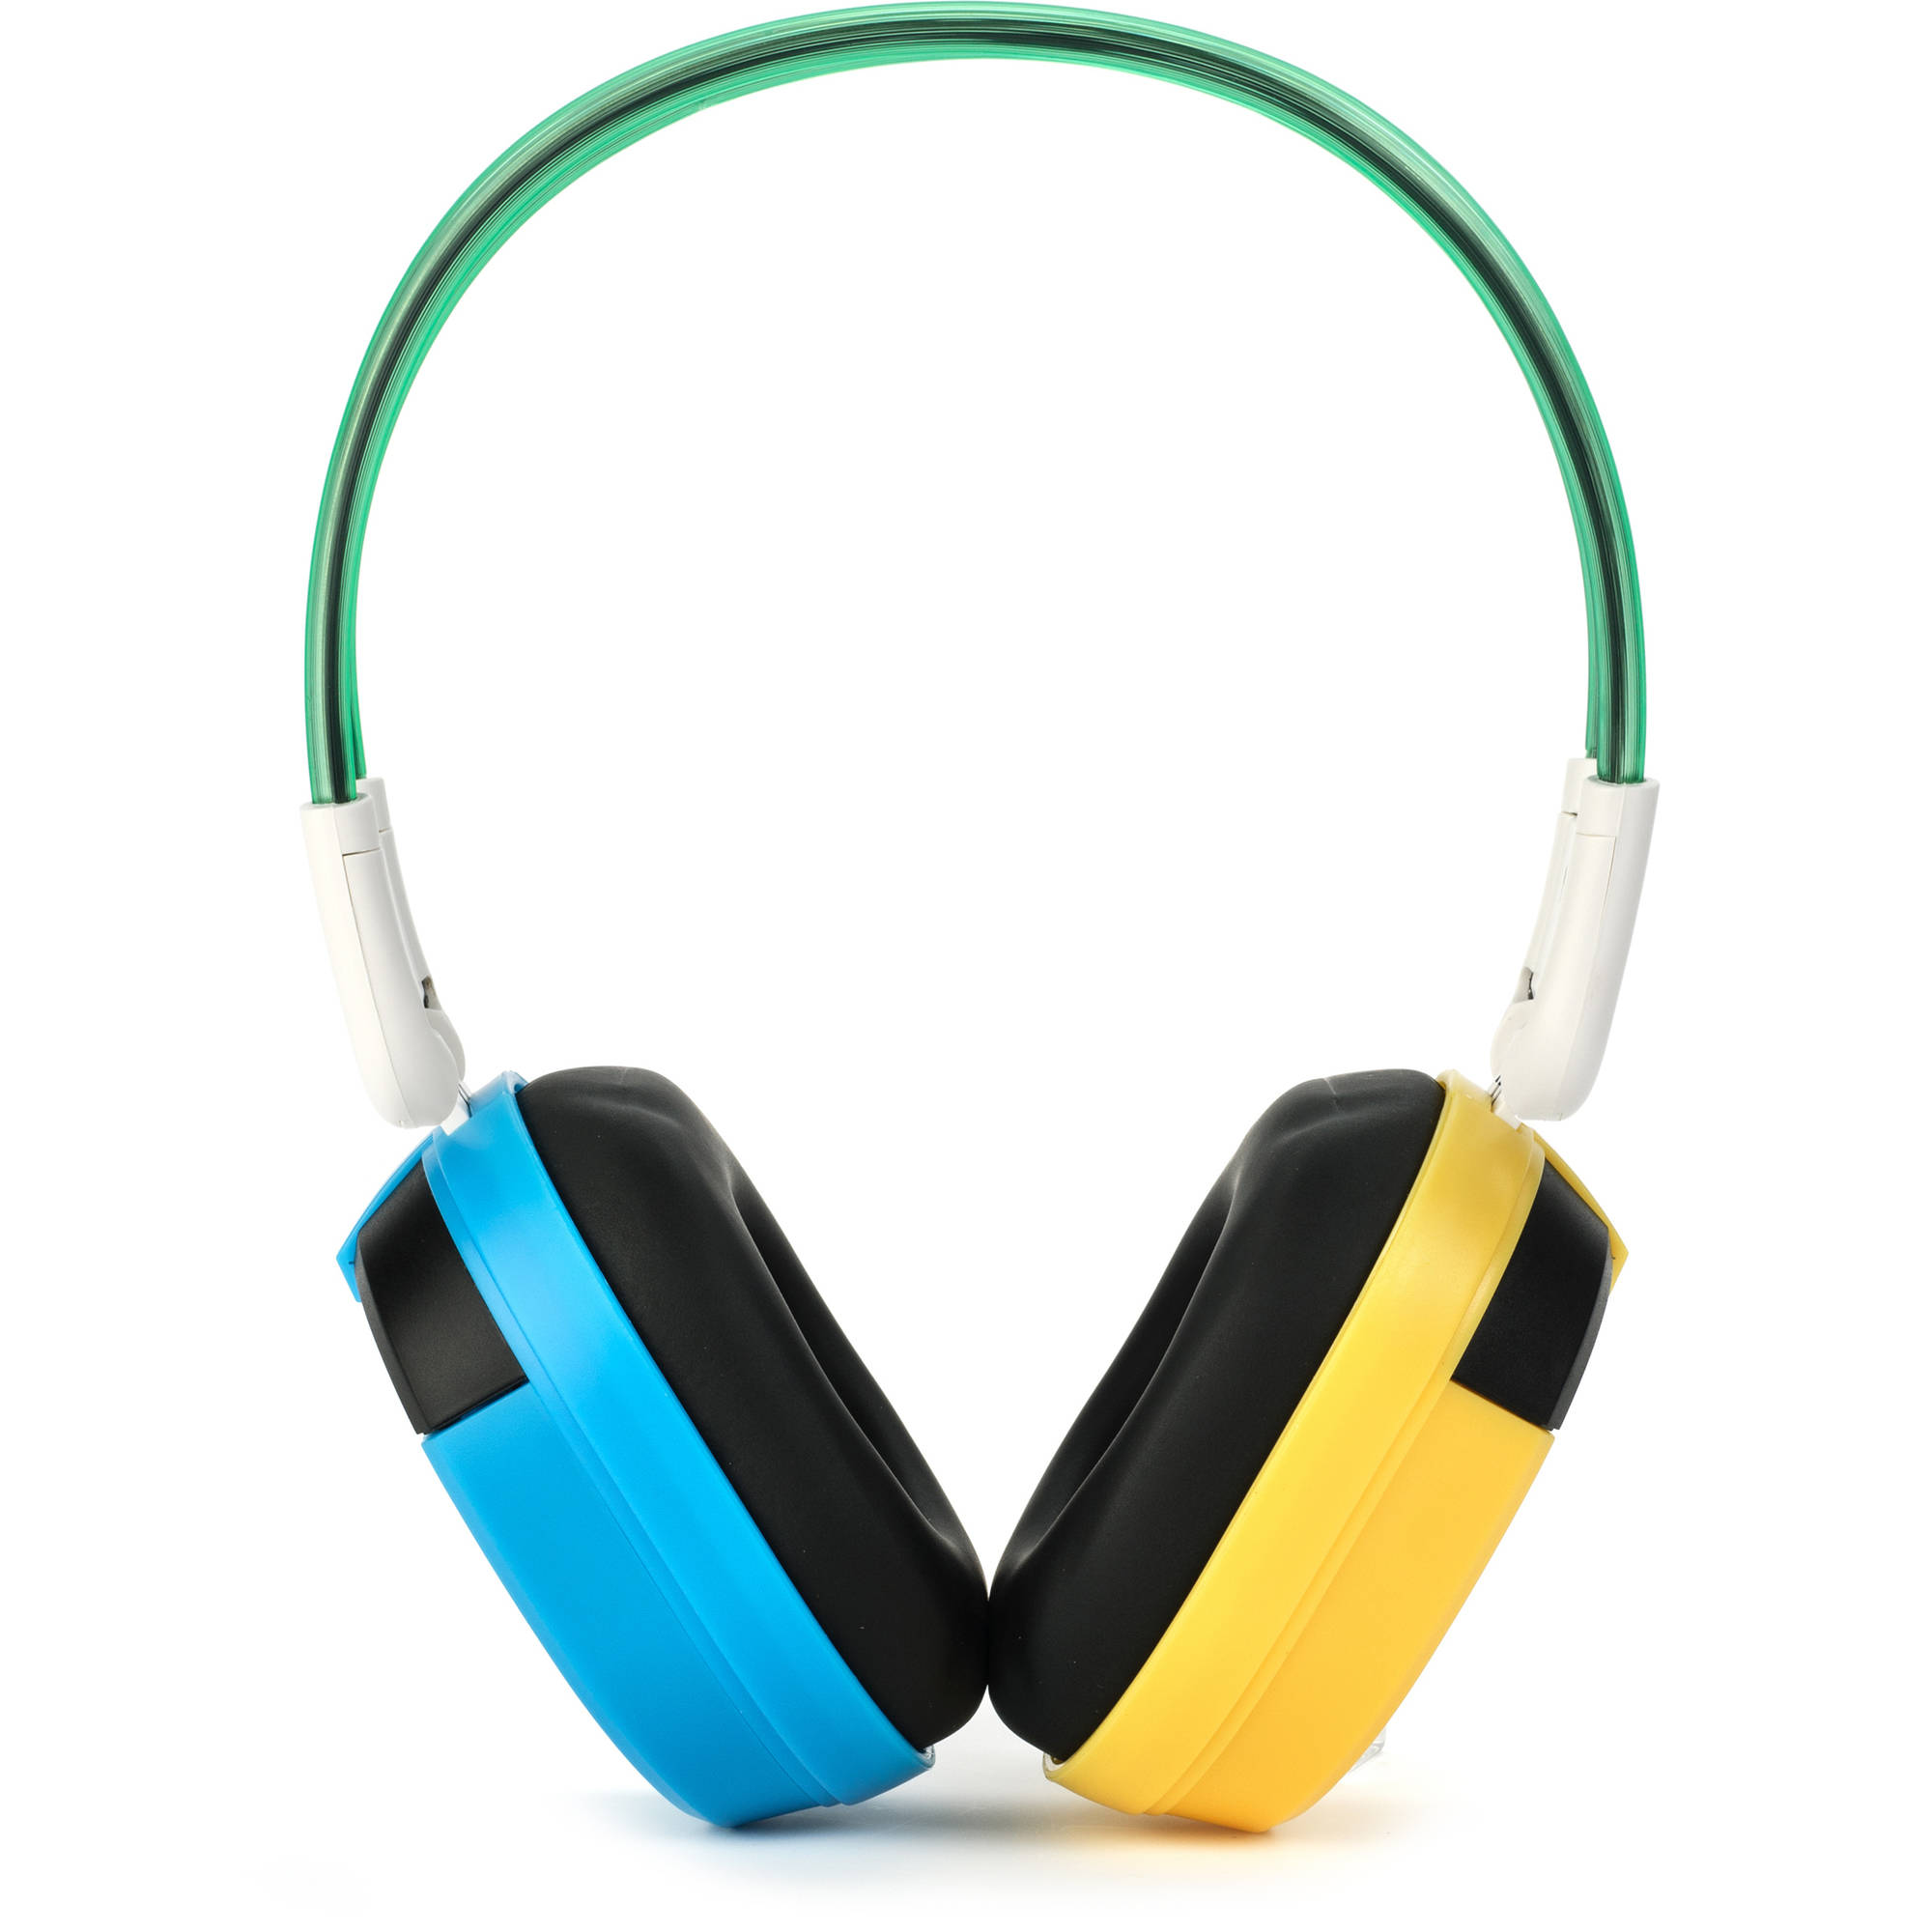 Bravo View BTS-03 Kid-Friendly Bluetooth Wireless Headphones, Blue/Yellow